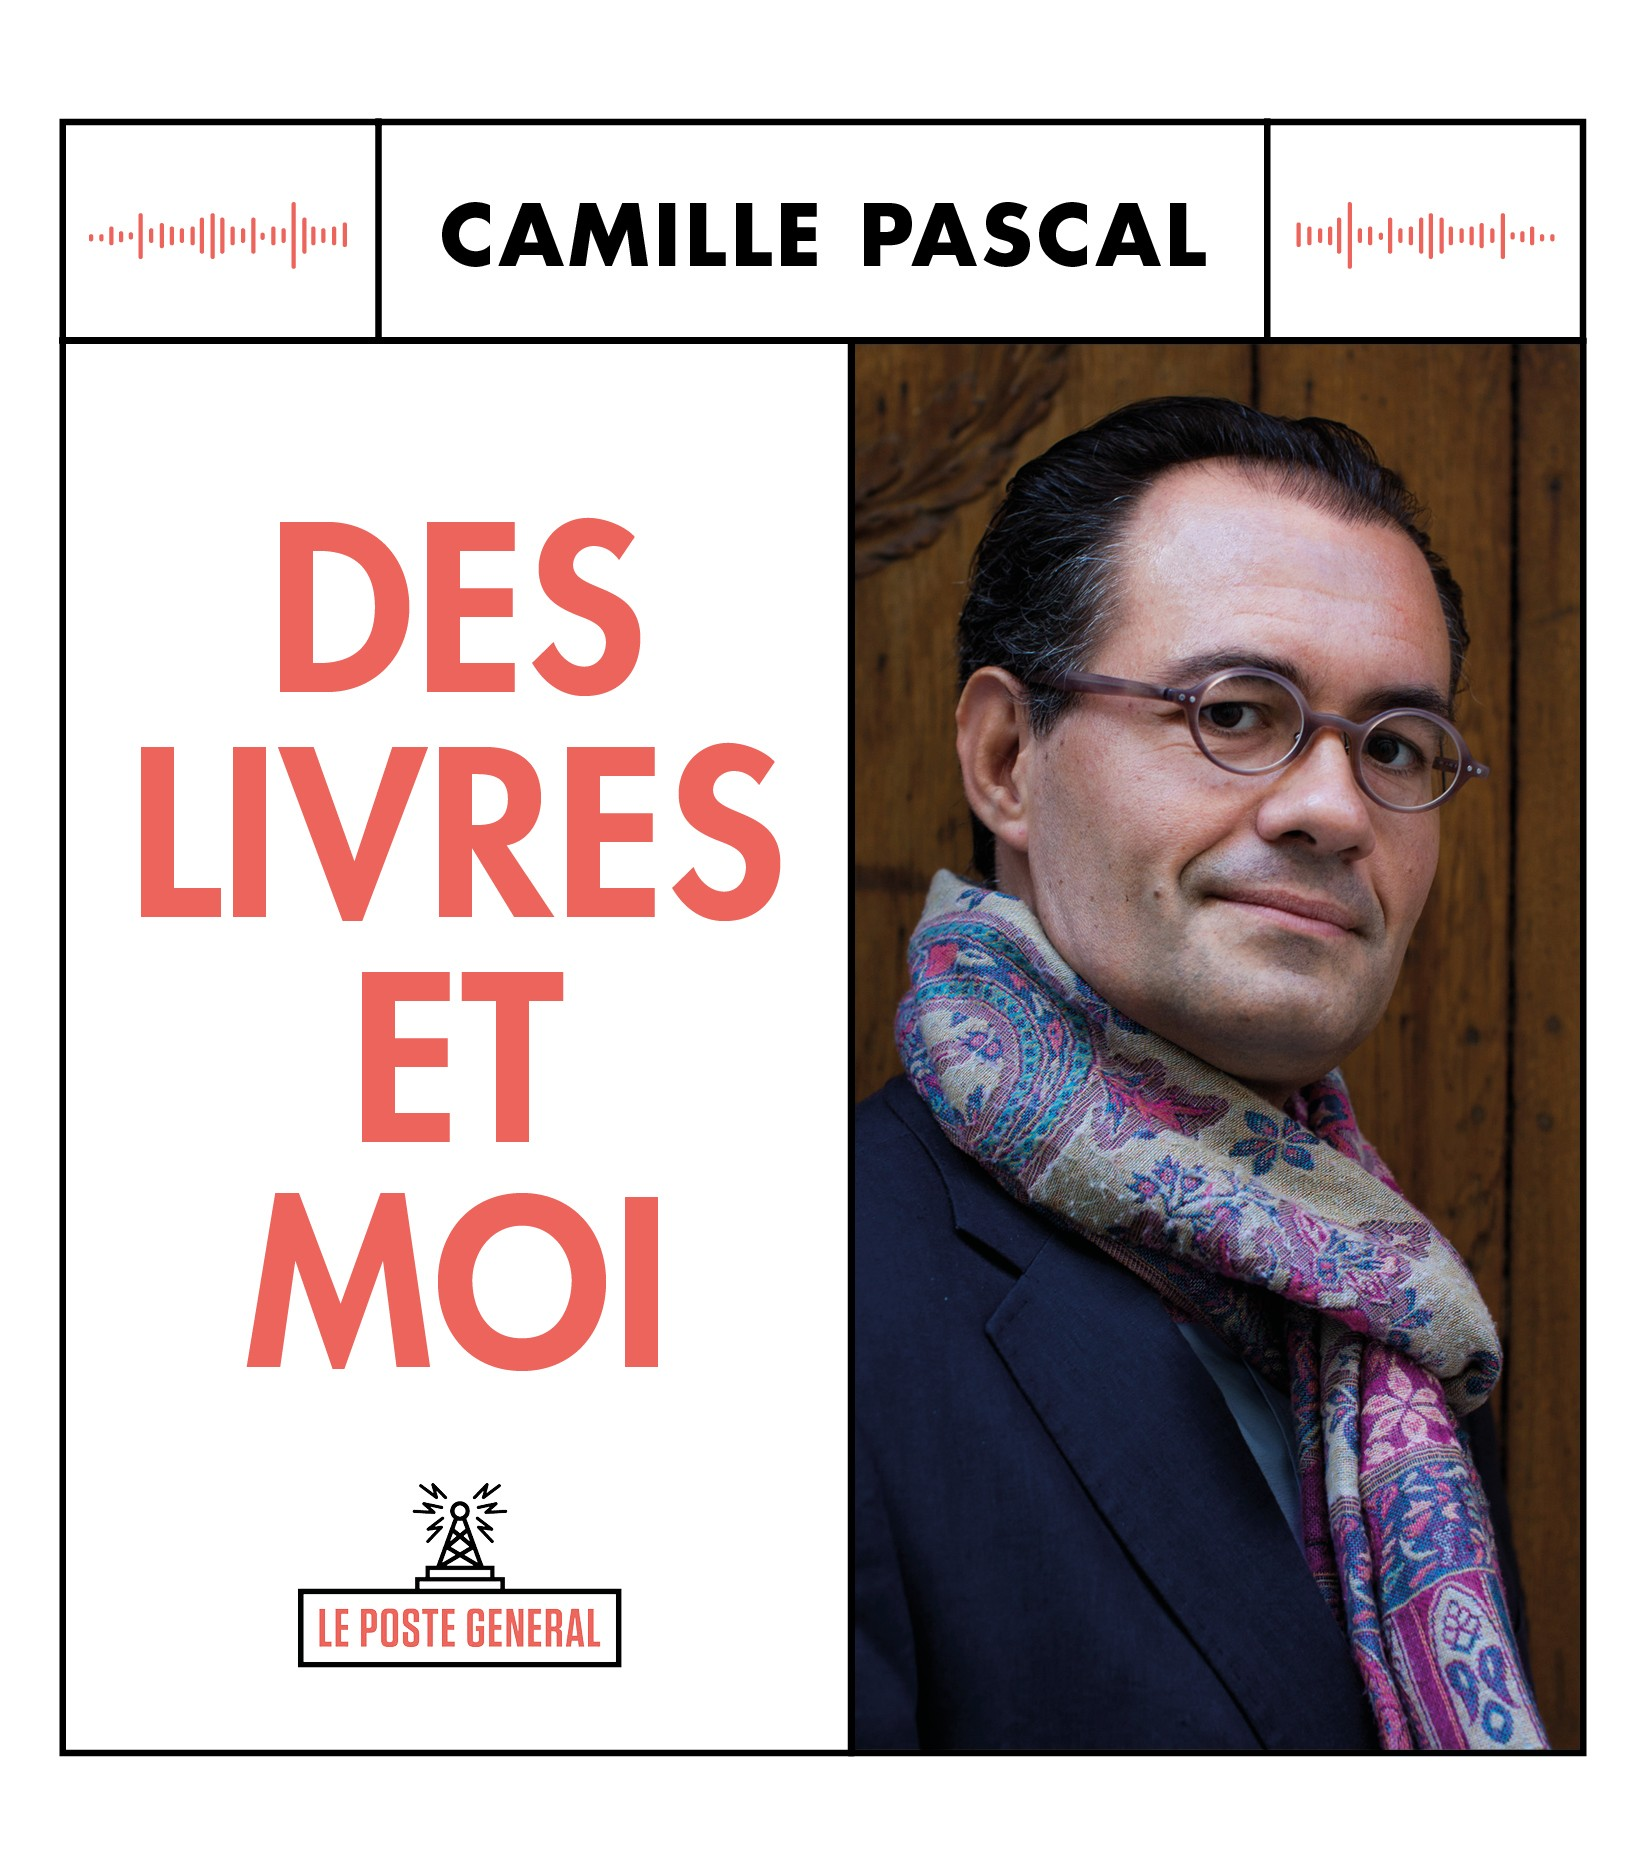 Camille Pascal